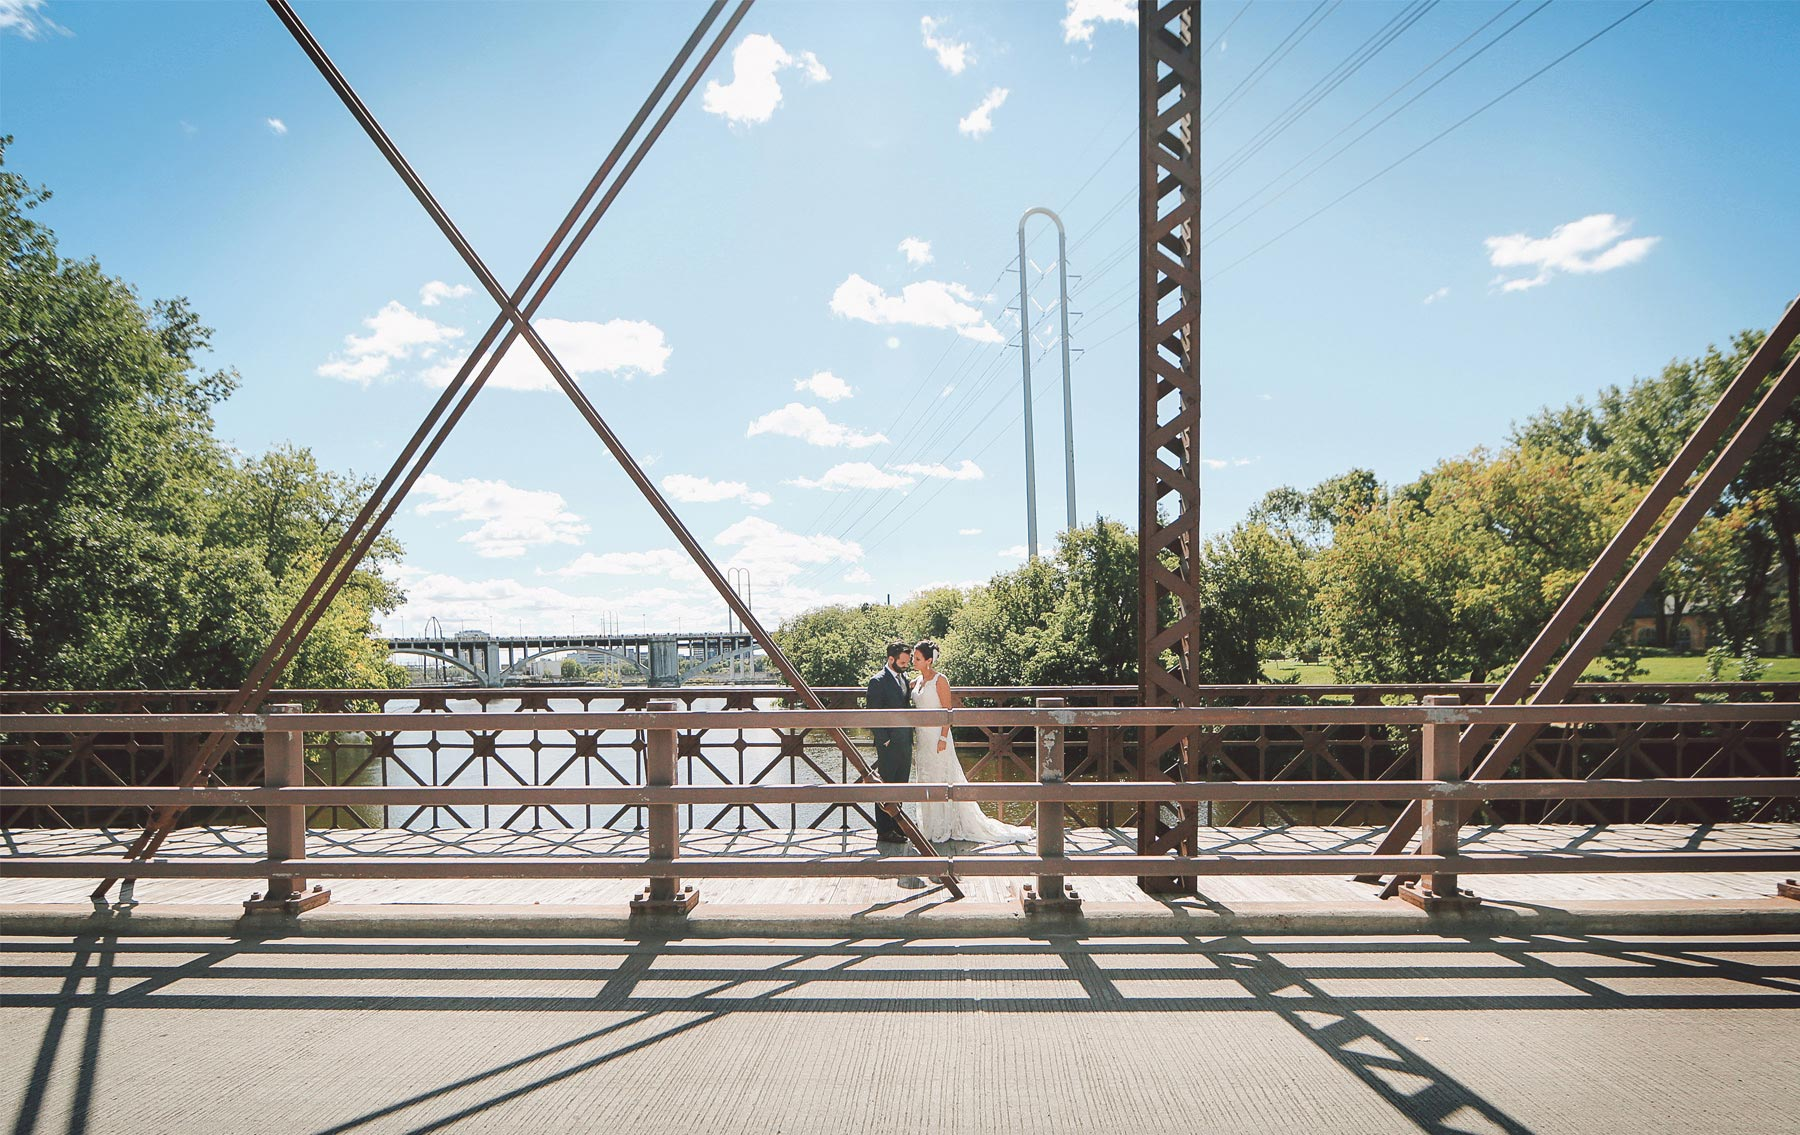 09-Minneapolis-Minnesota-Wedding-Photographer-by-Andrew-Vick-Photography-Summer-First-Meeting-Look-Bride-Groom-Merriam-Street-Bridge-Mississippi-River-Vintage-Ashley-and-Eric.jpg